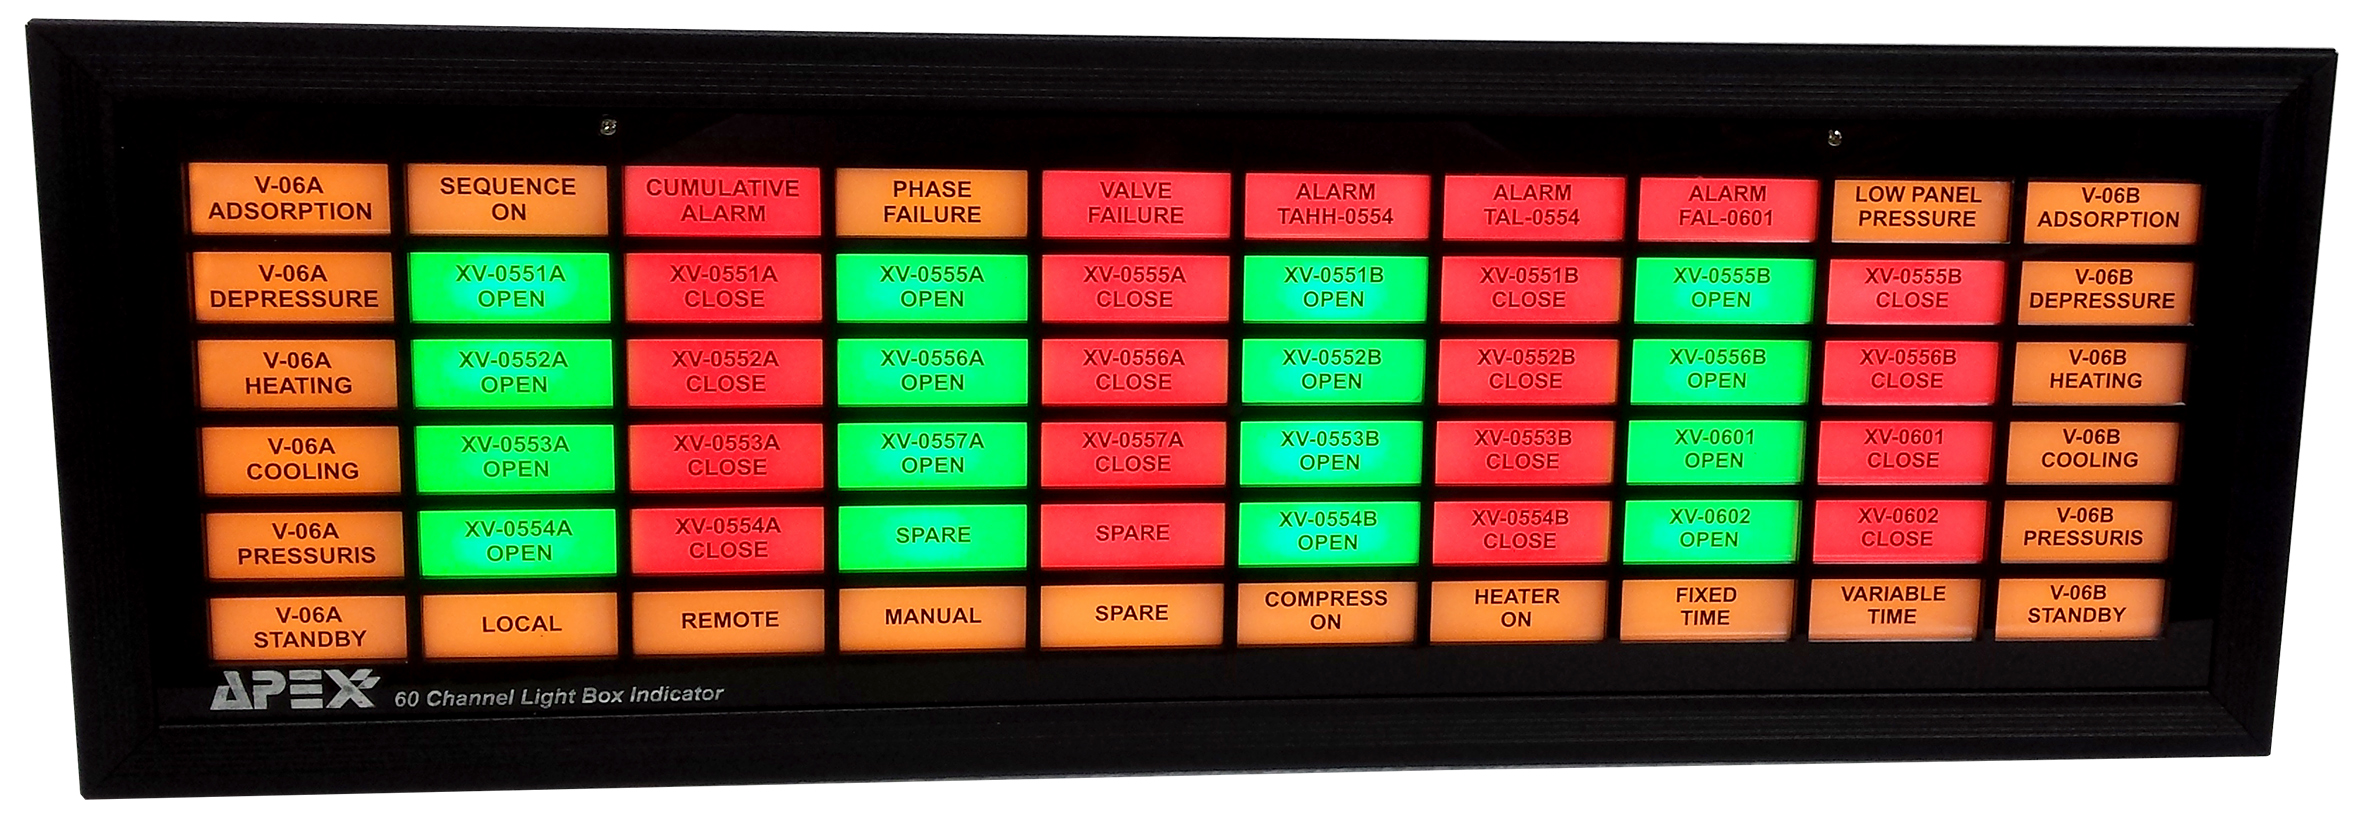 Alarm Annunciator Panels Product Details Reliable